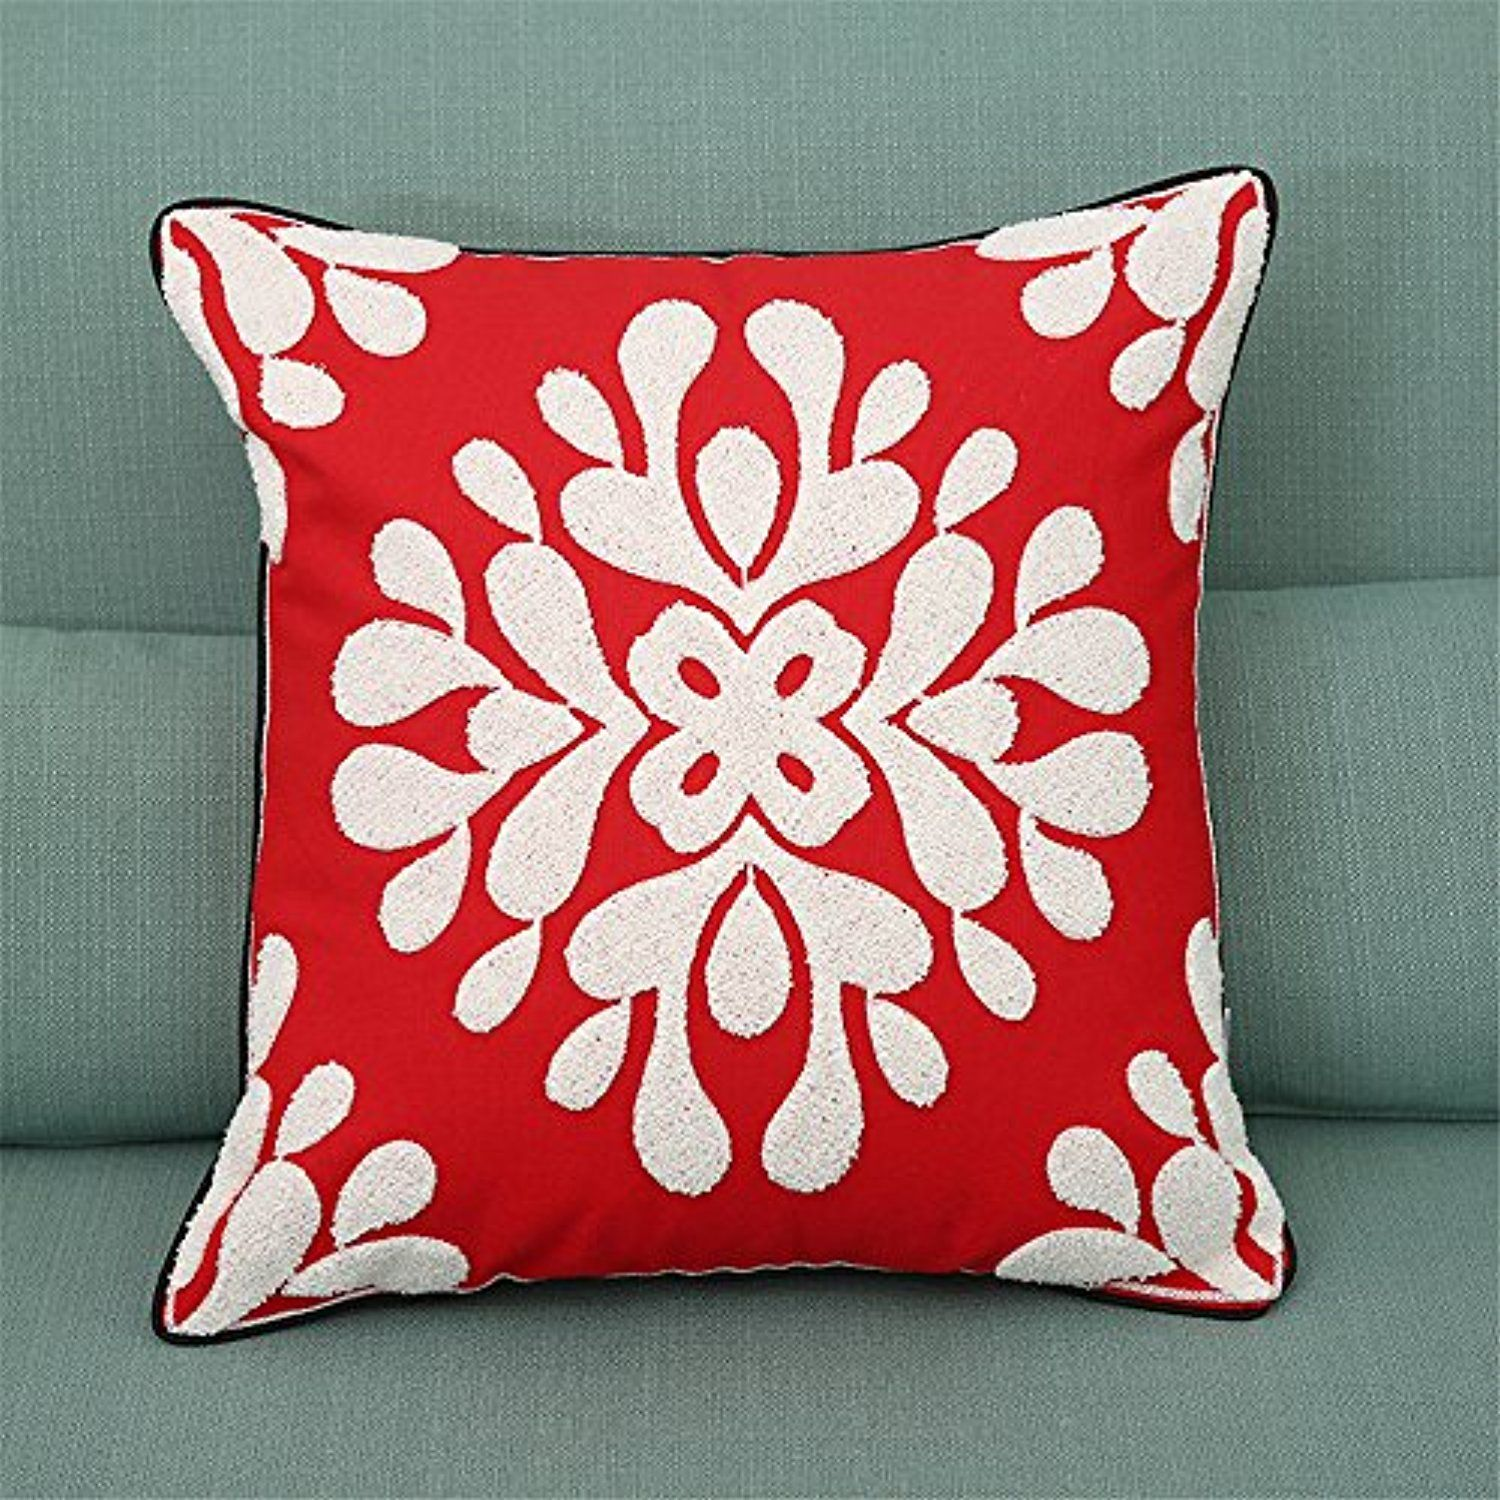 Soft square pillowcases christmas snowflake theme home decorative